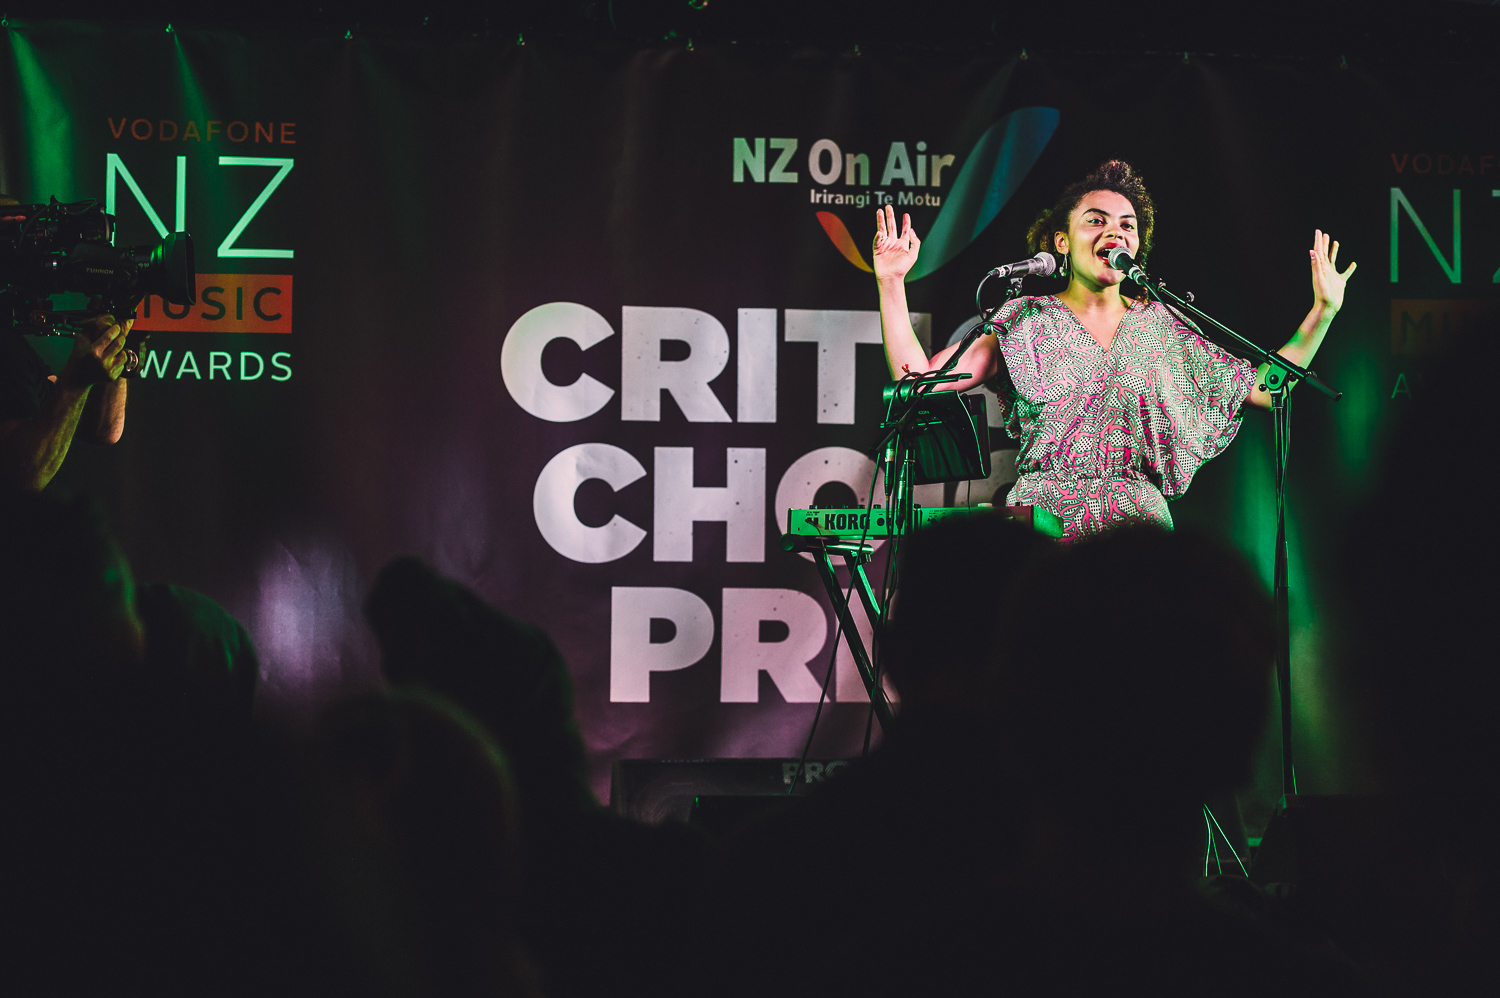 Lake South, Radna & Estere  performing at the Critic's Choice Showcase at the Kings Arms Tavern, Auckland, New Zealand on October 29, 2014.